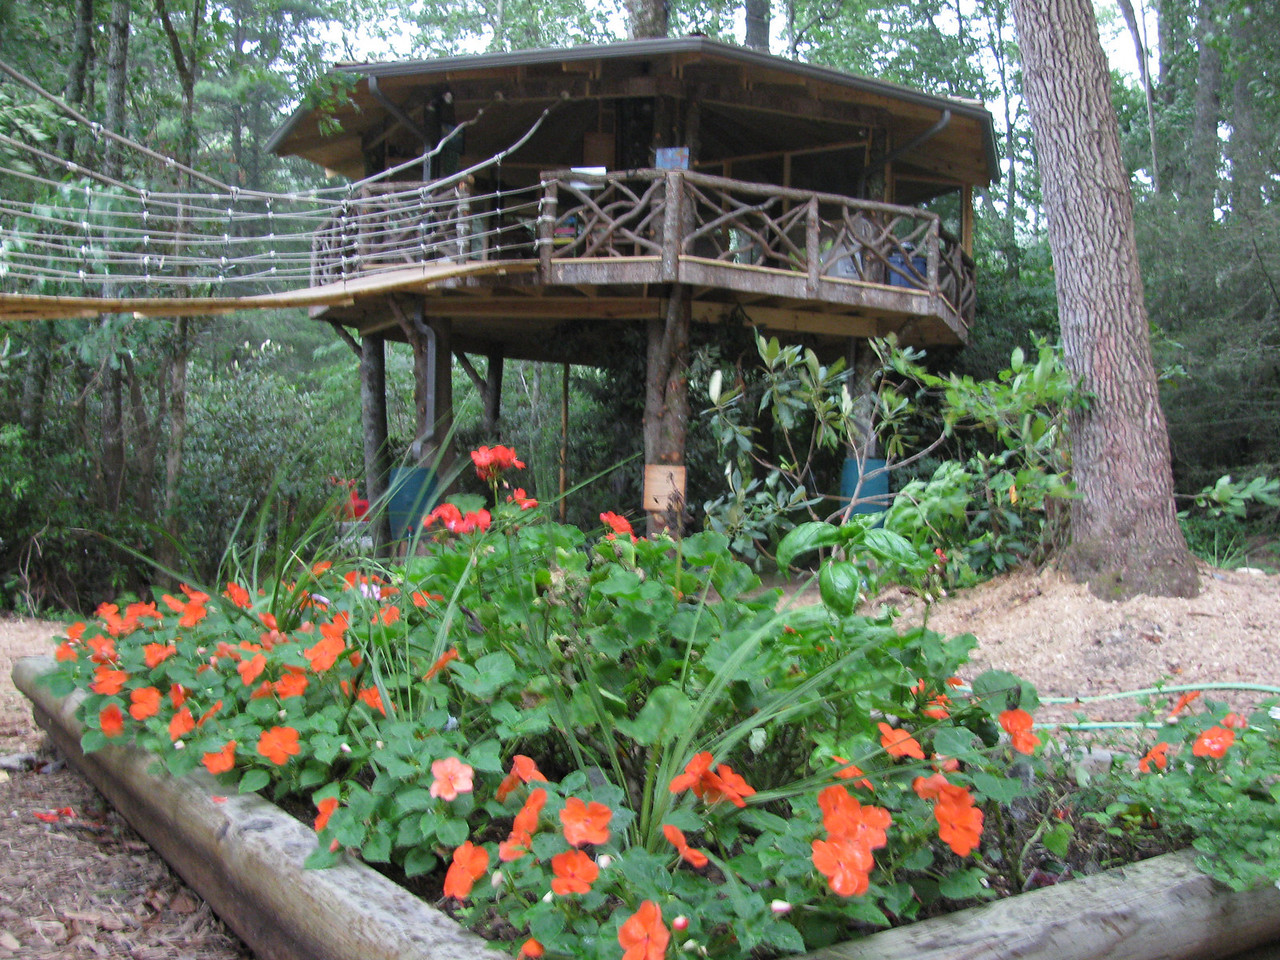 Camp Merrie-Wood treehouse